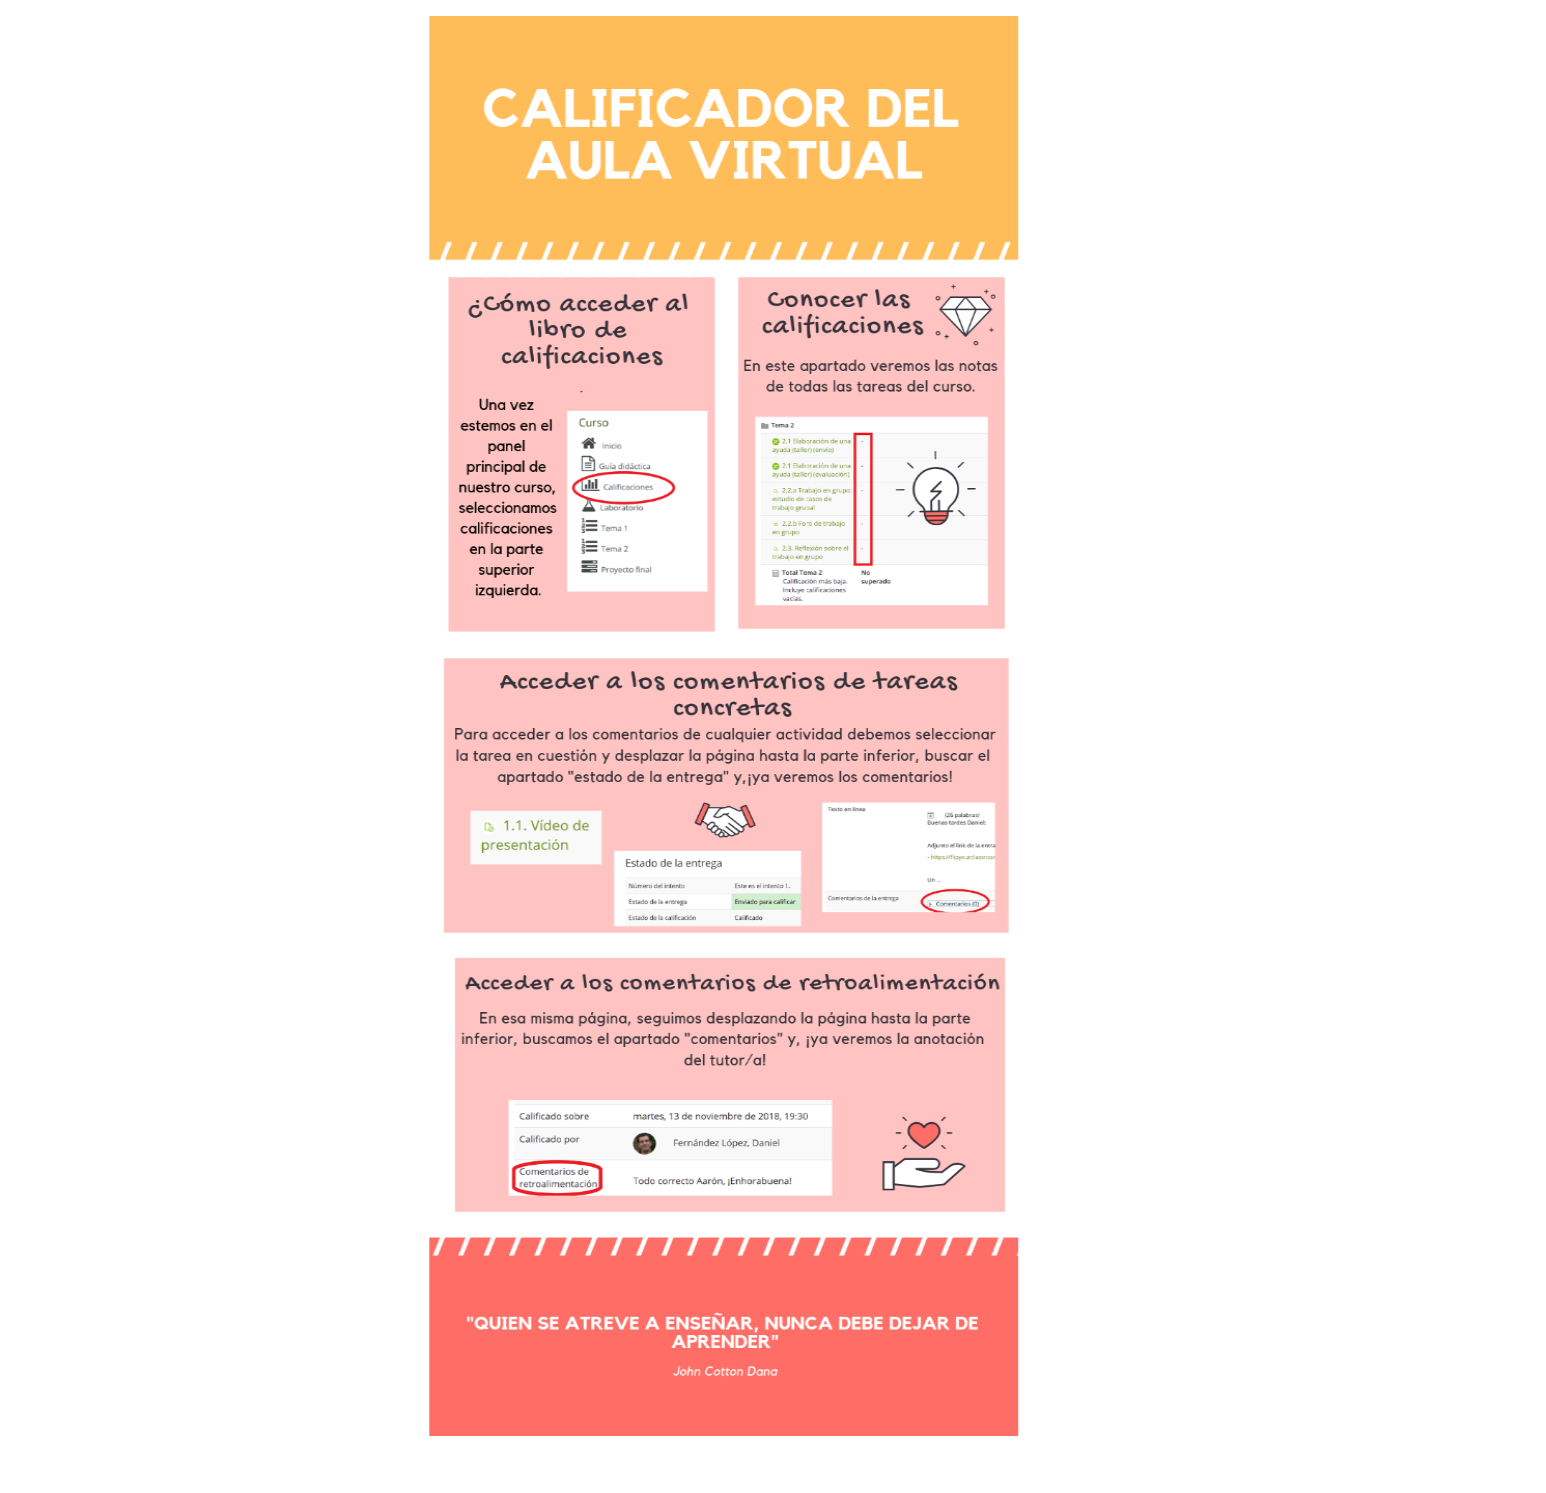 INFOGRAFÍA CALIFICADOR AULA VIRTUAL